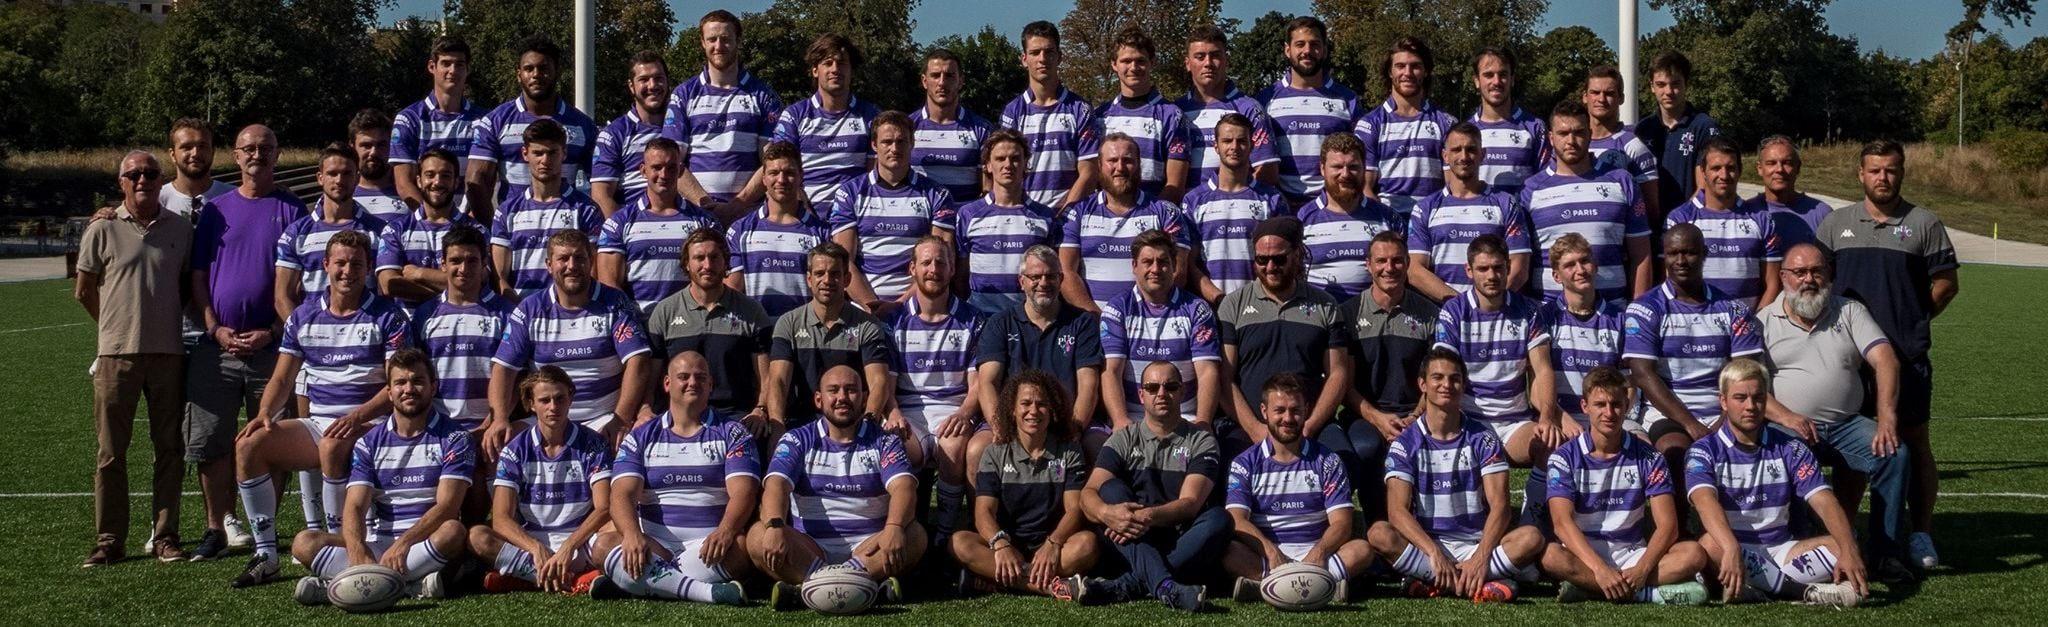 Paris Universite Club Rugby